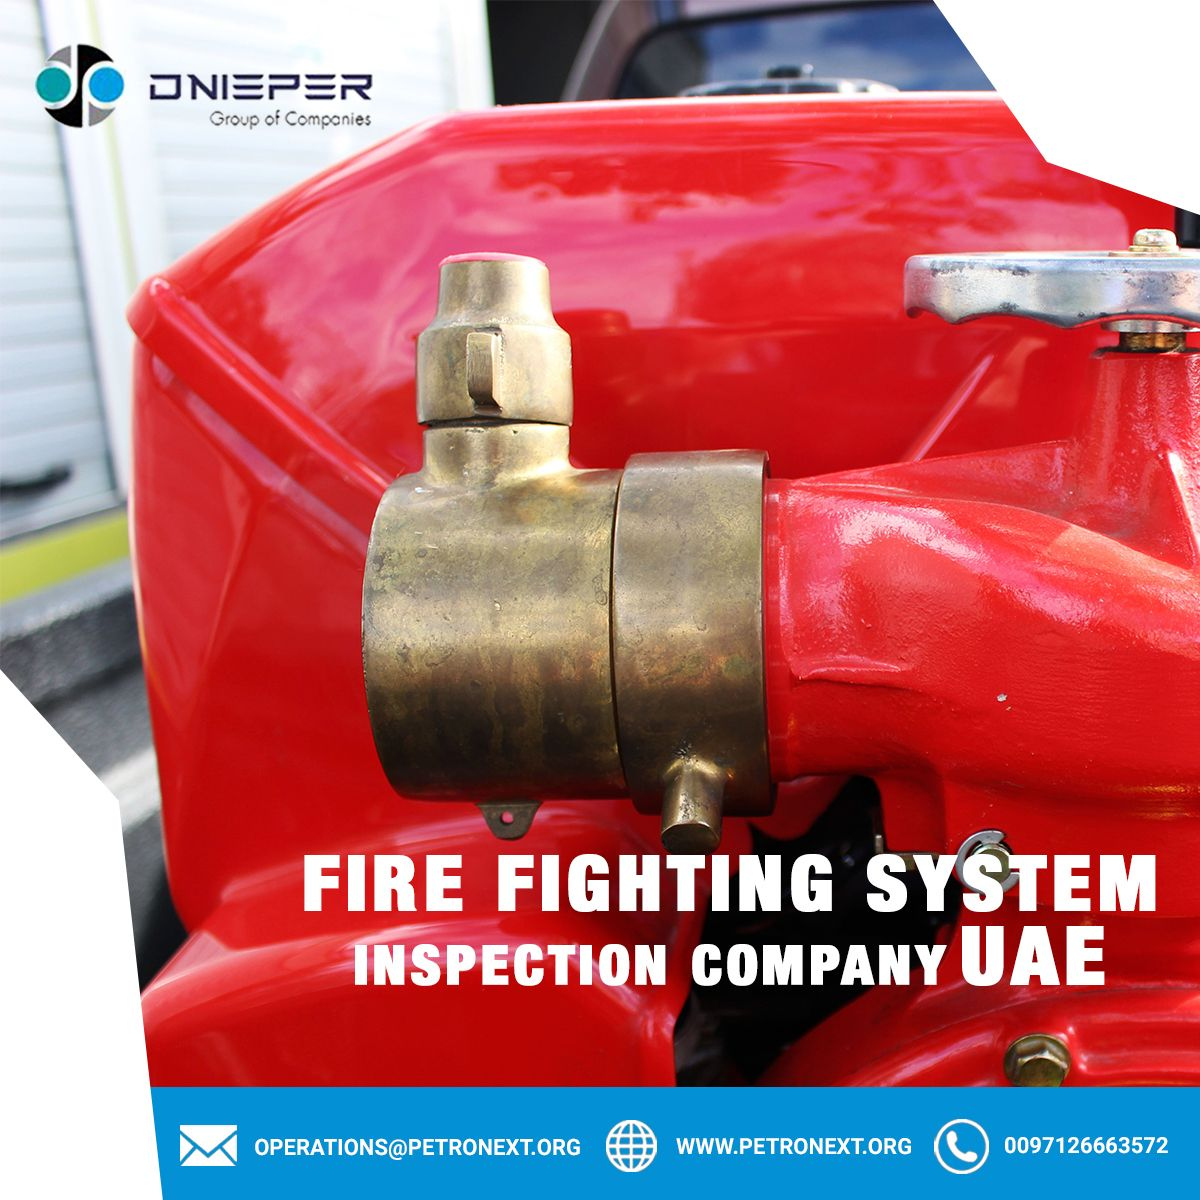 If you are searching for fire fighting system inspection